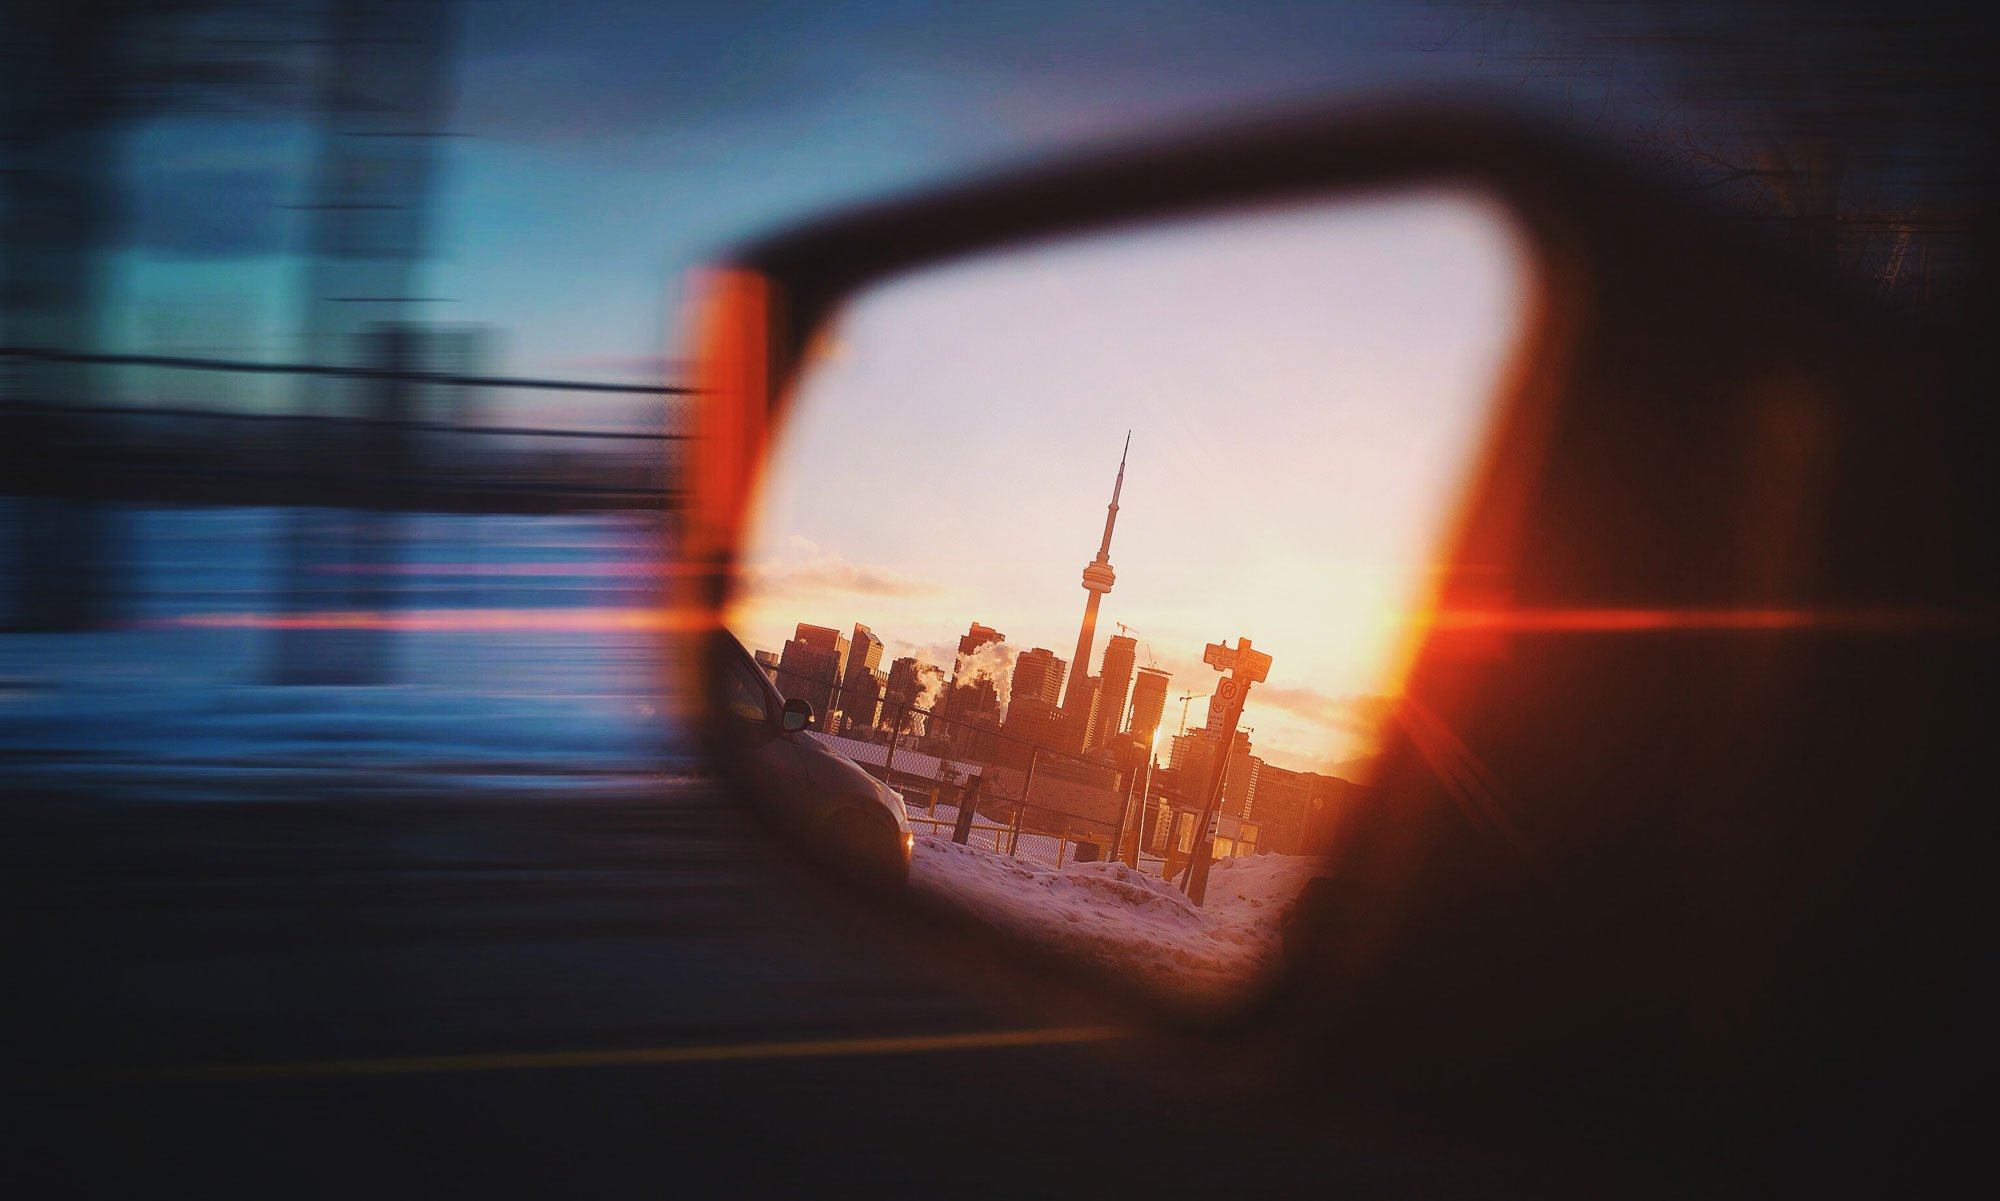 Review mirror showing the city scape of Toronto with the CN Tower at the peak